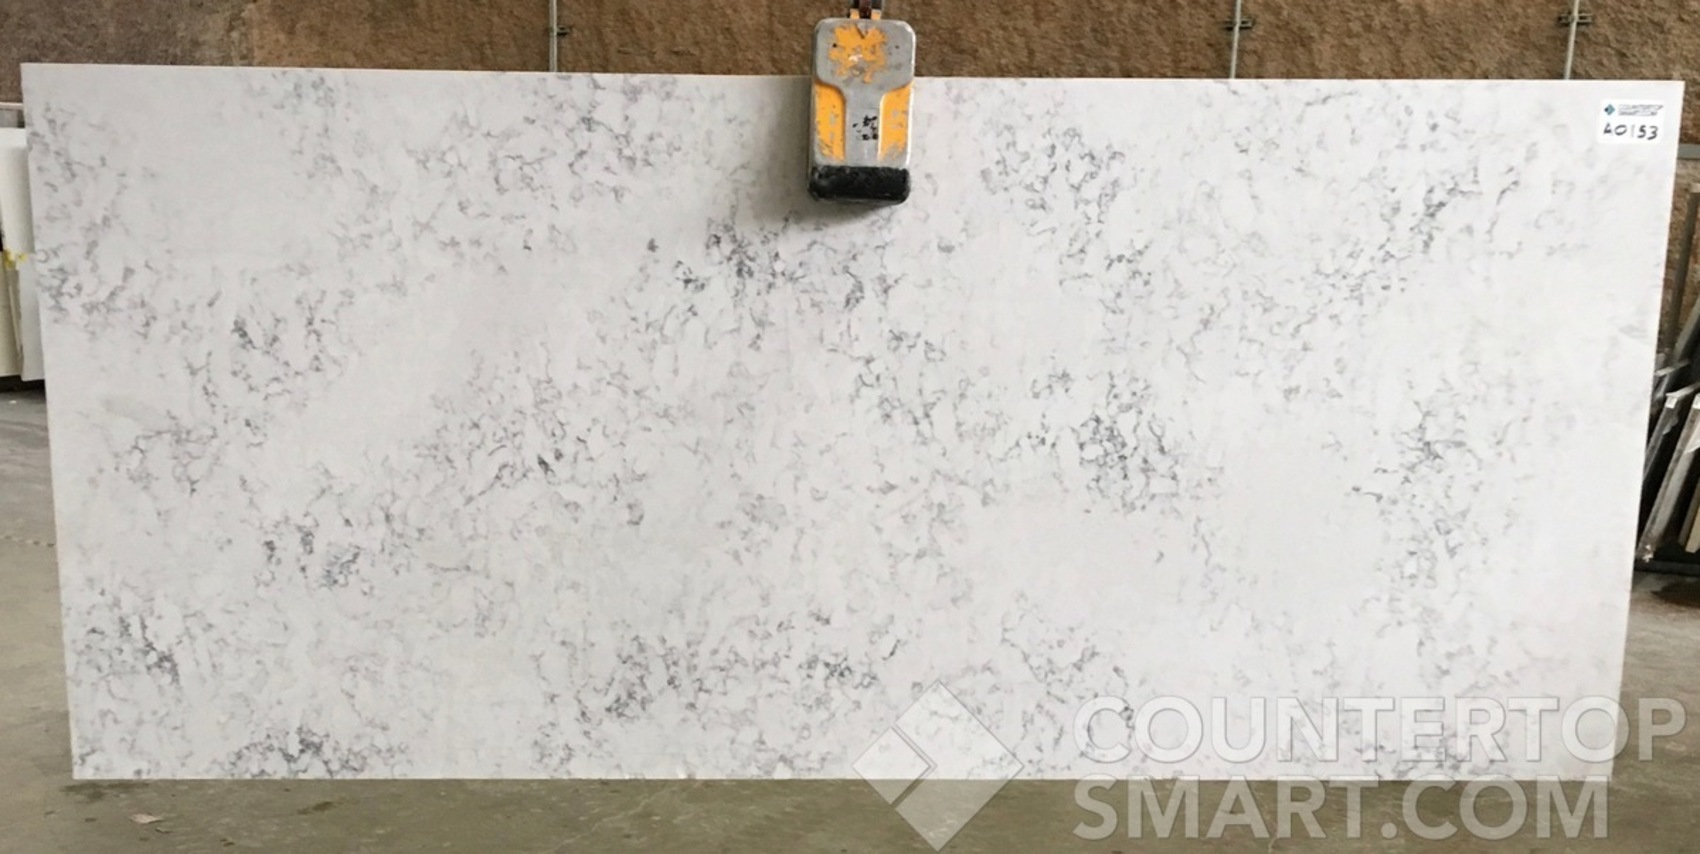 77 Off Your Perfect Quartz Engineered Silestone Helix Countertop Remnant In Austin Texas Only 382 50